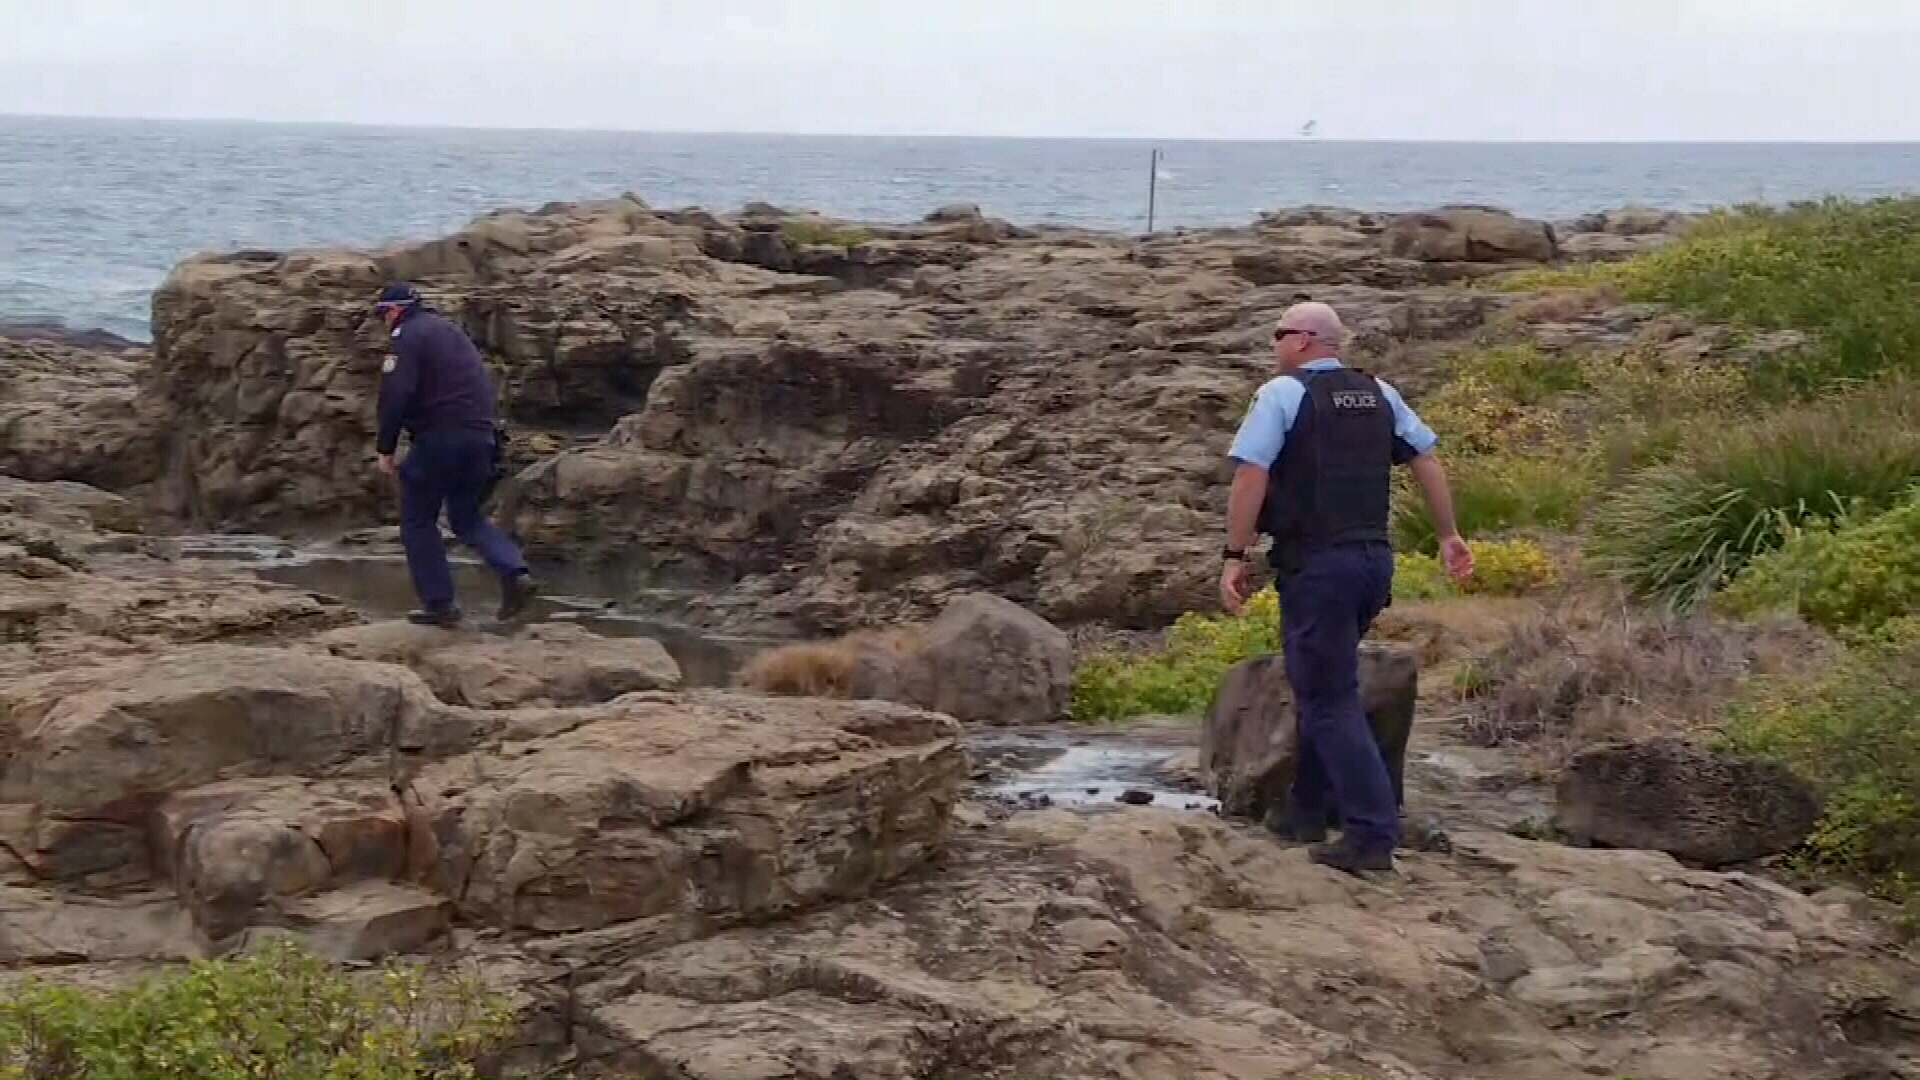 Human remains believed to be NSW fisherman